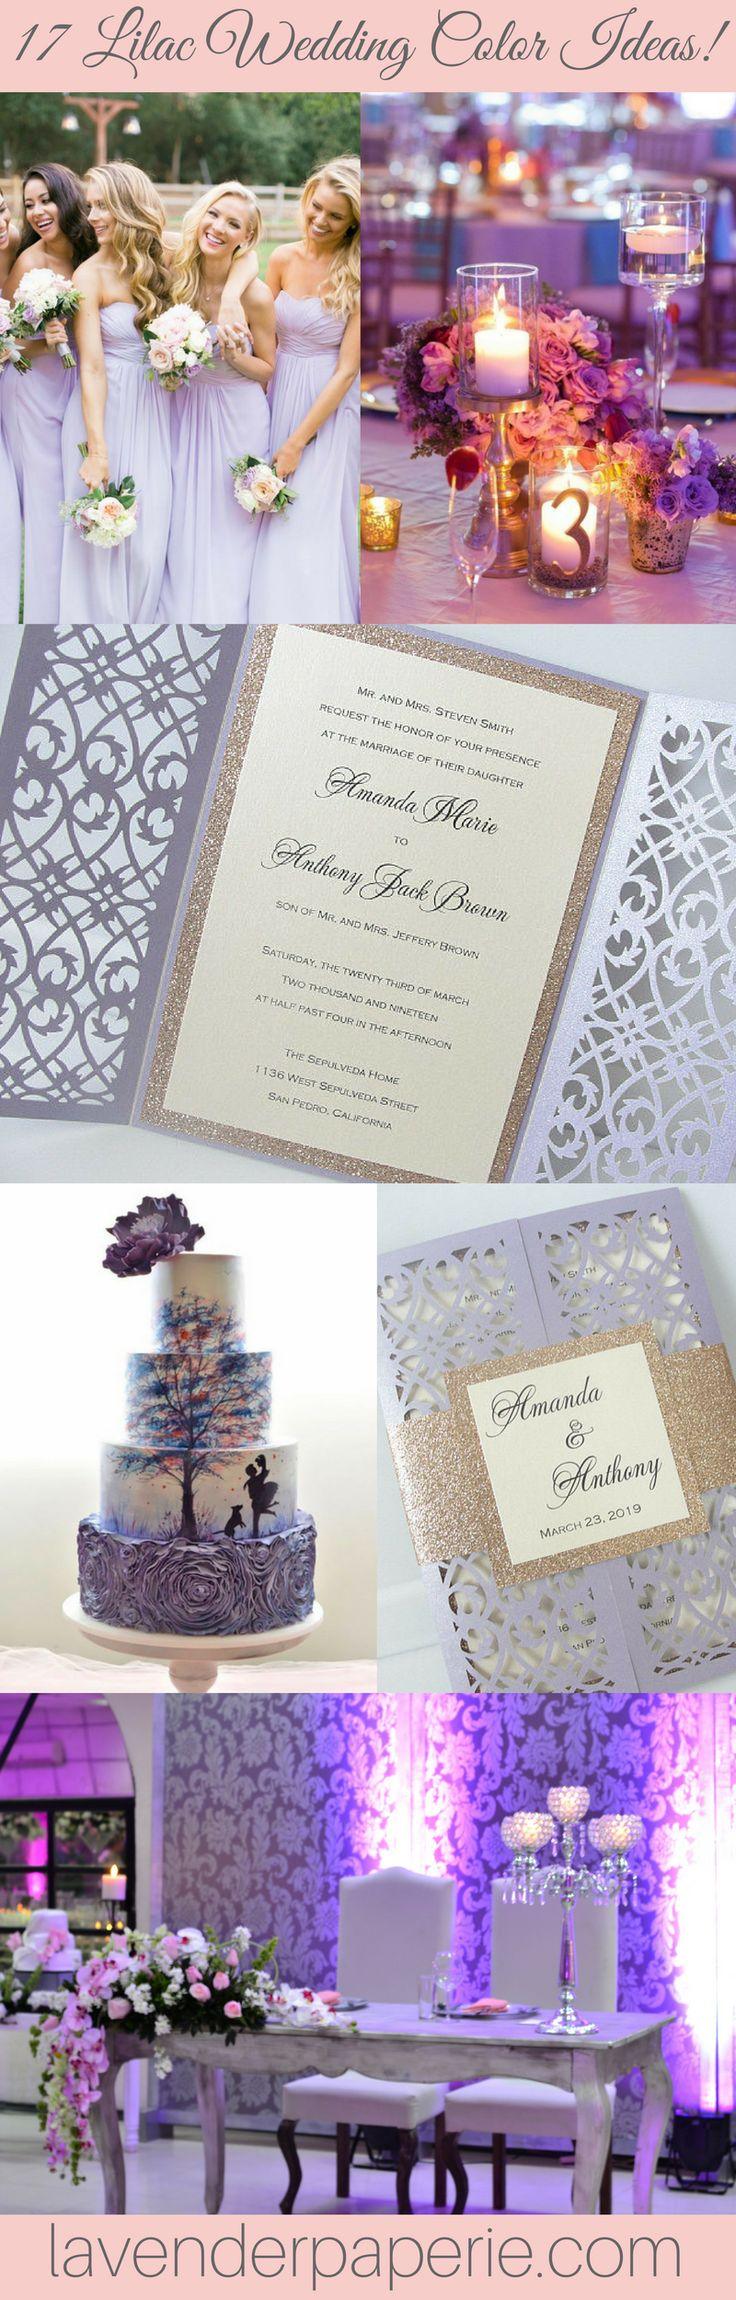 43 best Lilac Wedding Color Combinations images on Pinterest | Lilac ...